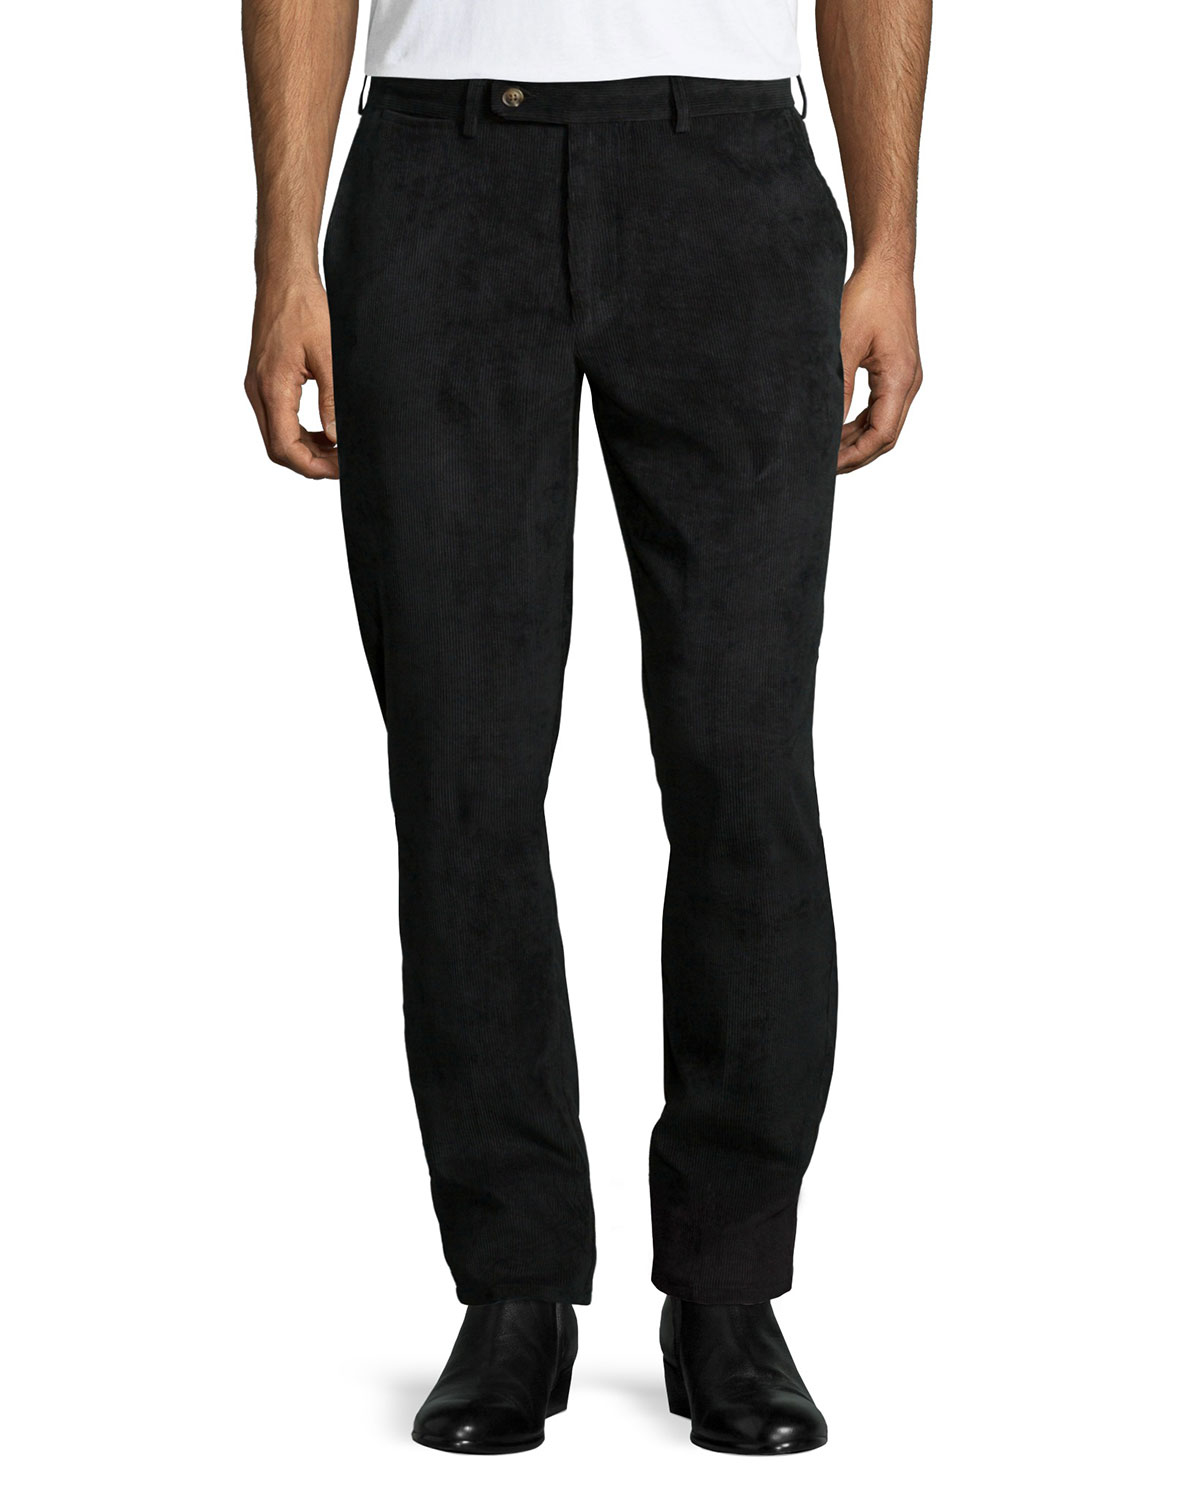 Women's Black Slim Fit Corduroy Jeans $ 29 + $ shipping From Nordstrom Rack Price last checked 12 hours ago Product prices and availability are accurate as of the date/time indicated and are subject to downloadsolutionspa5tr.gq: $